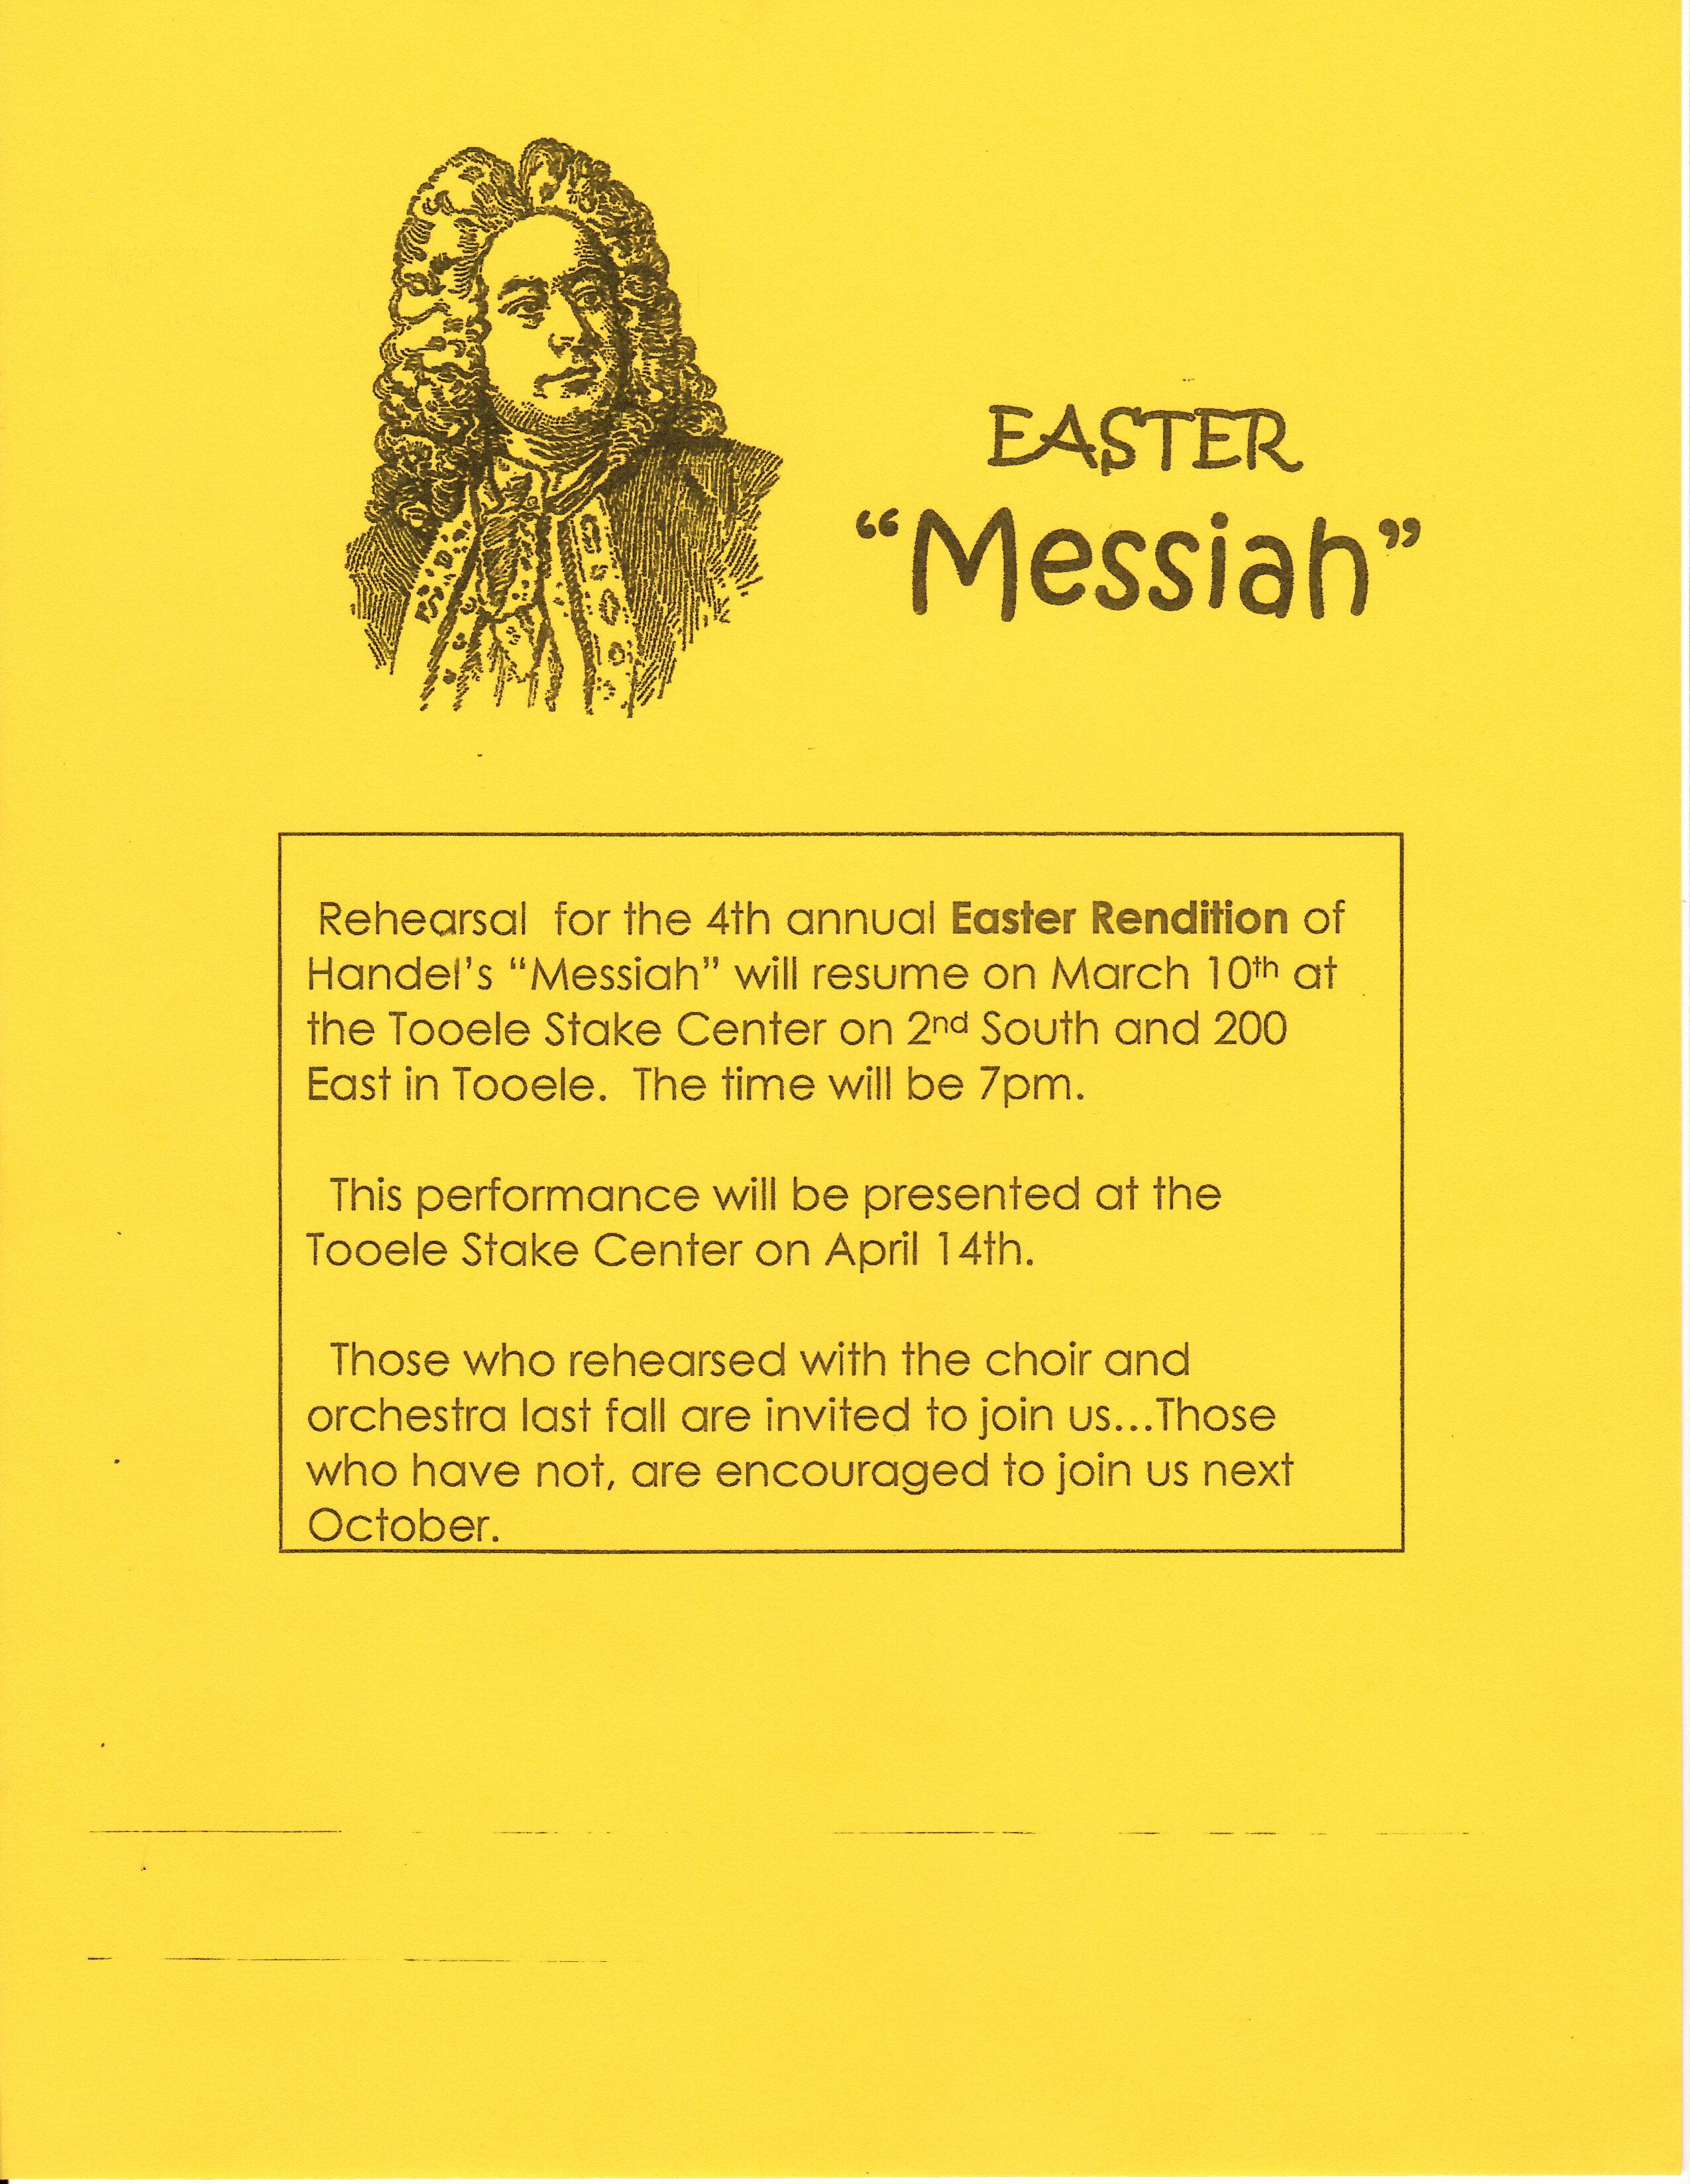 Easter Messiah 2019